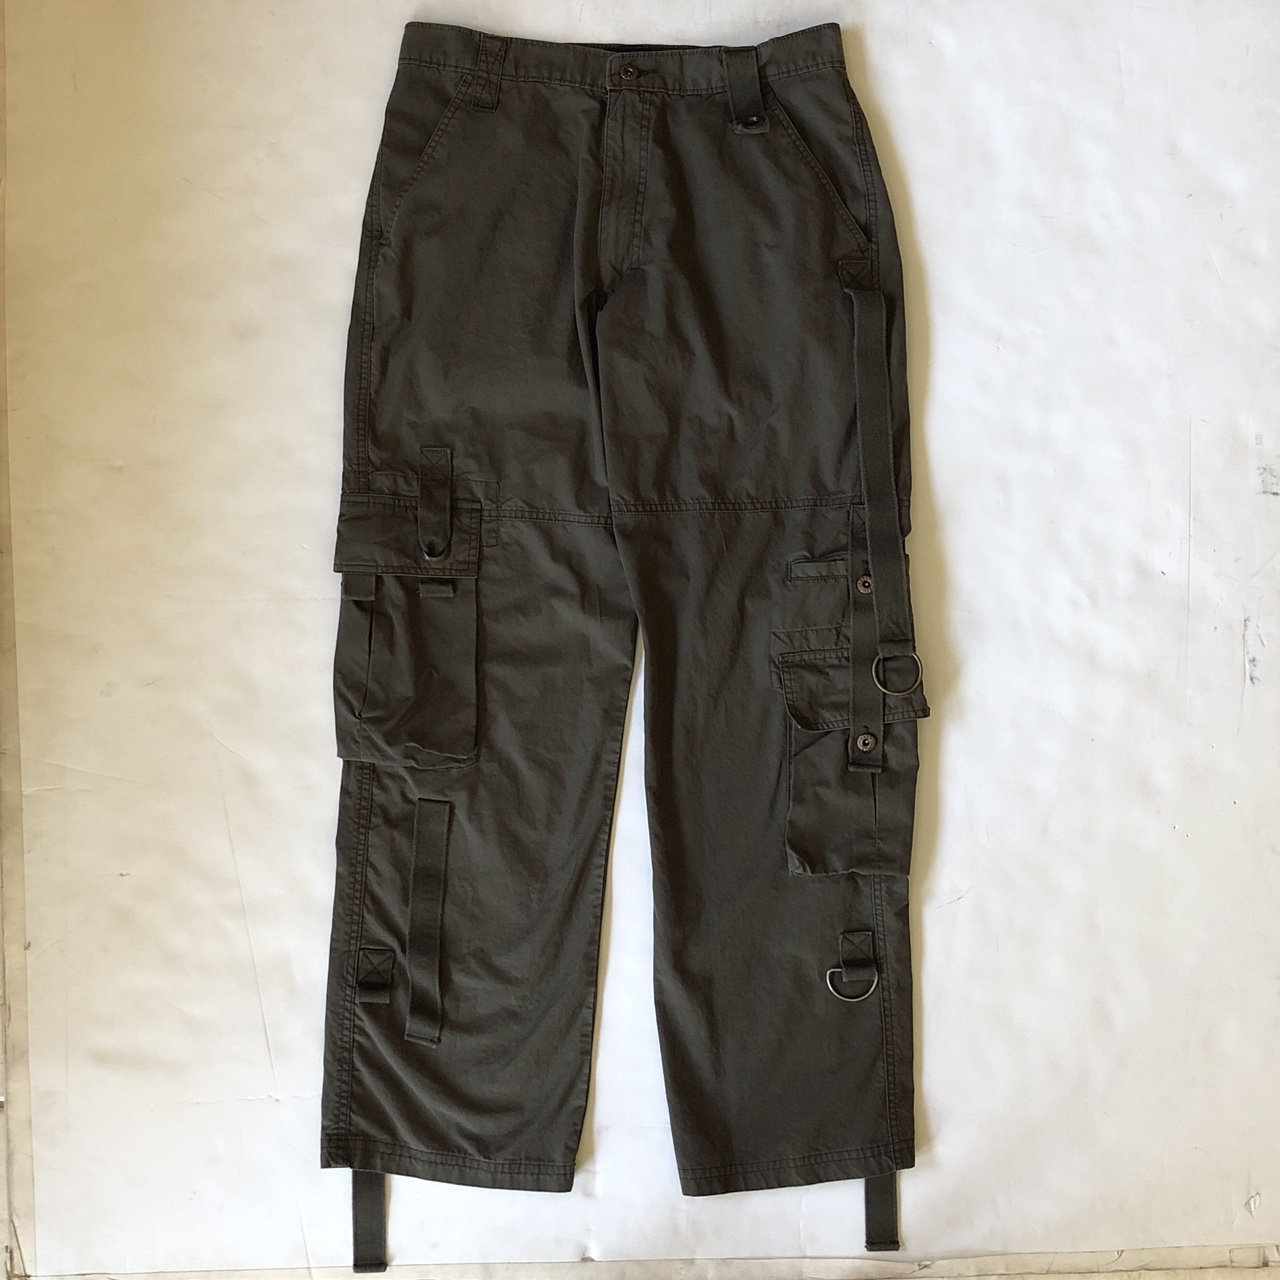 Product Image 1 - 👁 Rare Levis Sykes cargo